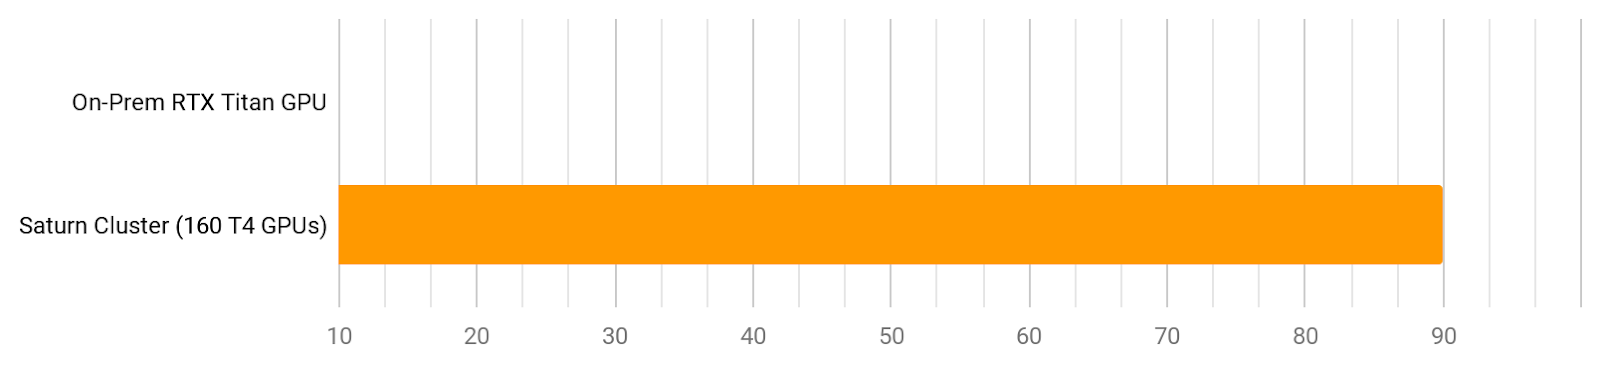 Performance graph of videos processed per hour